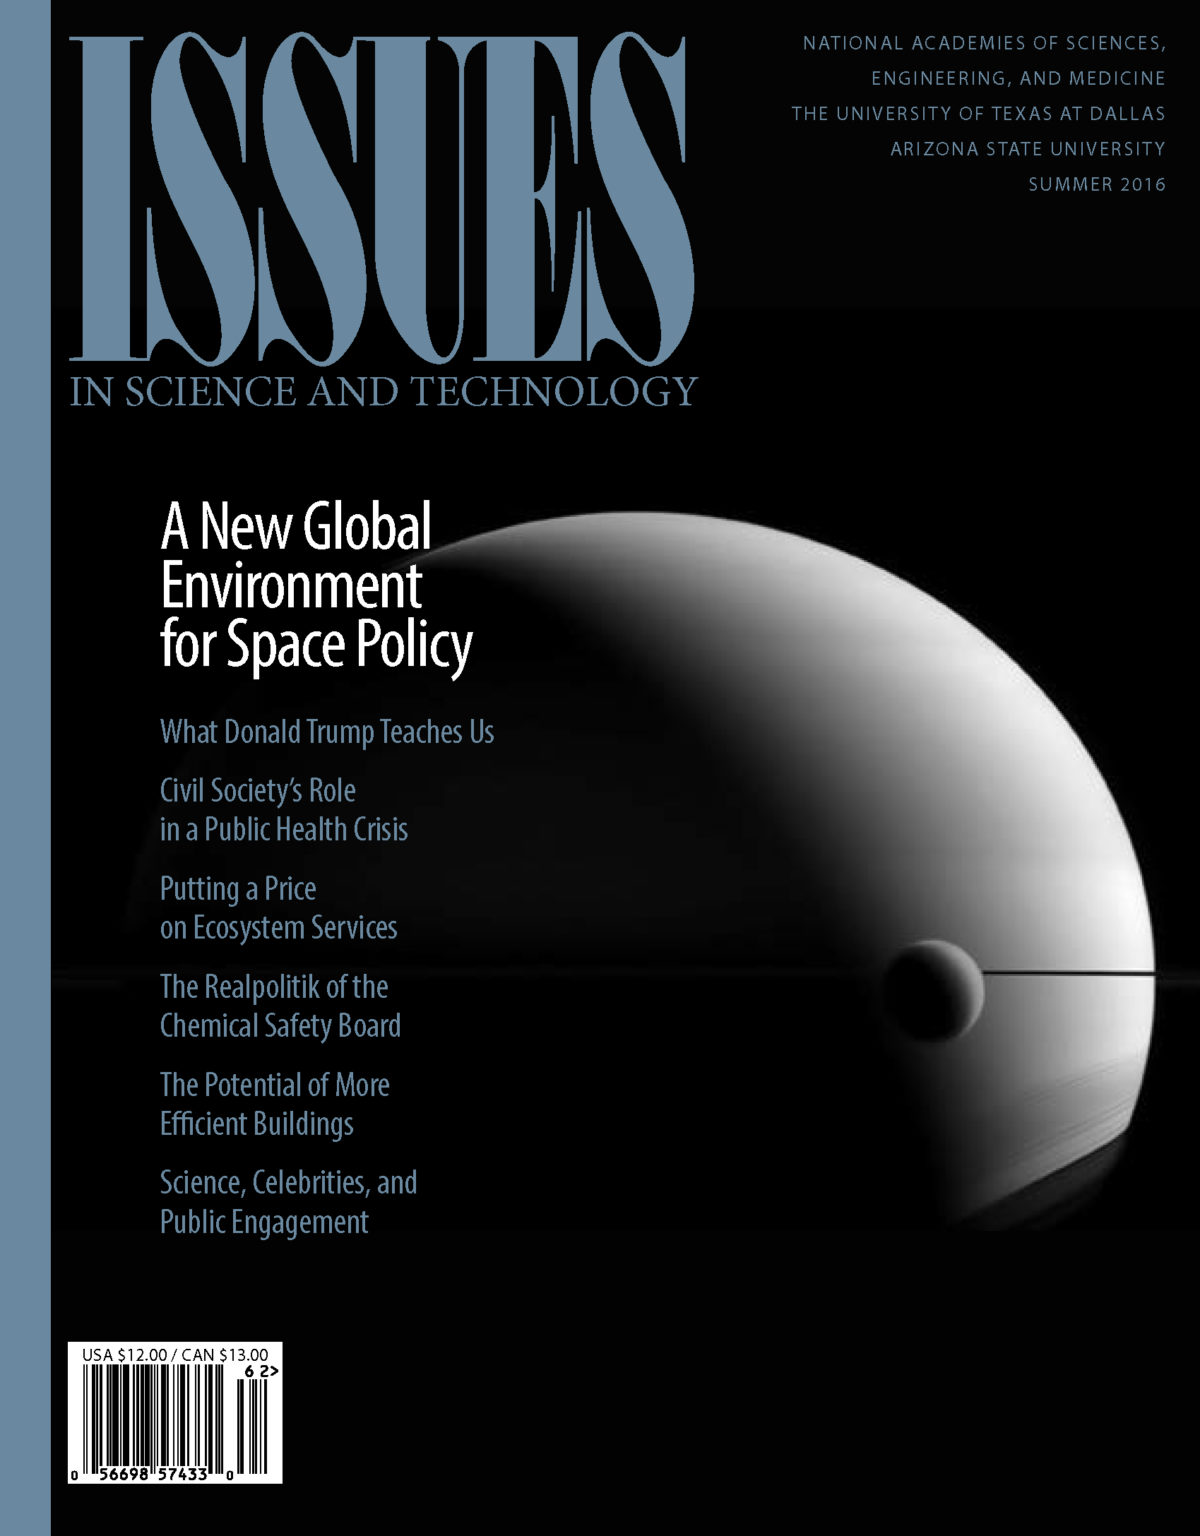 Magazine cover shows a moon orbiting a planet